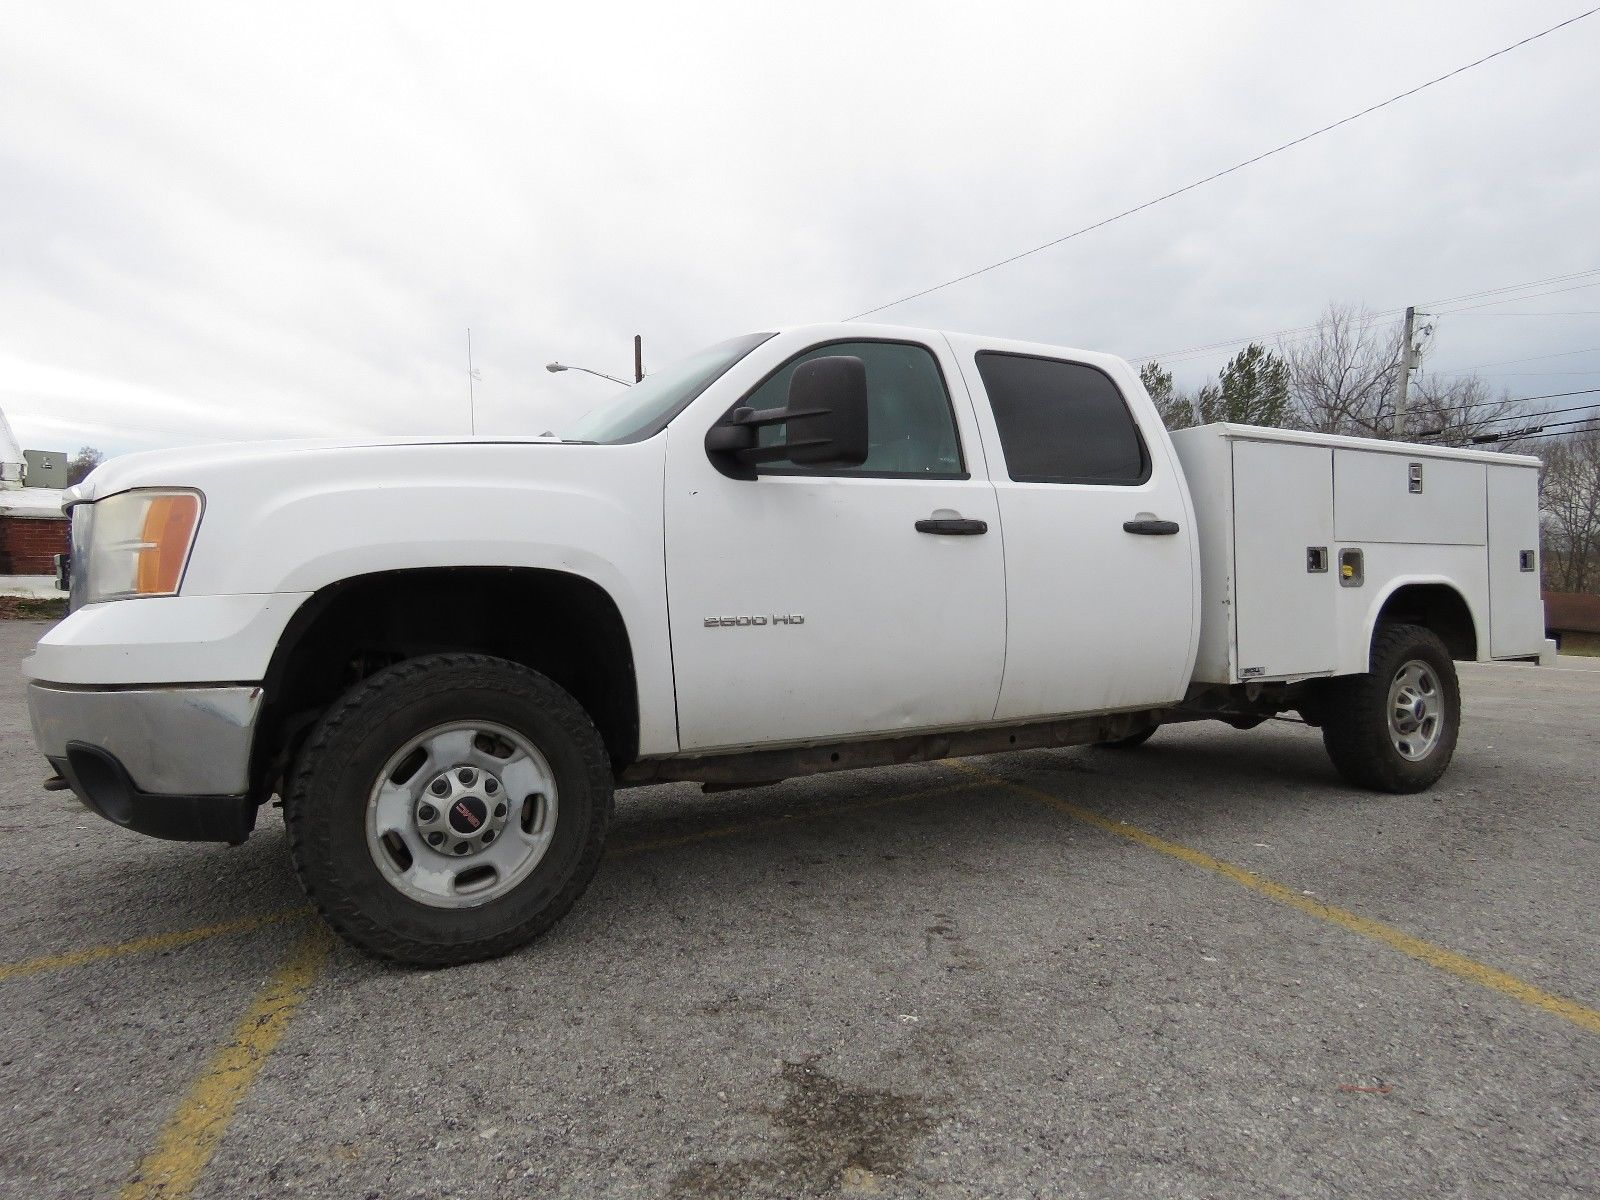 utility bed 2012 Chevrolet Silverado 2500 lifted for sale